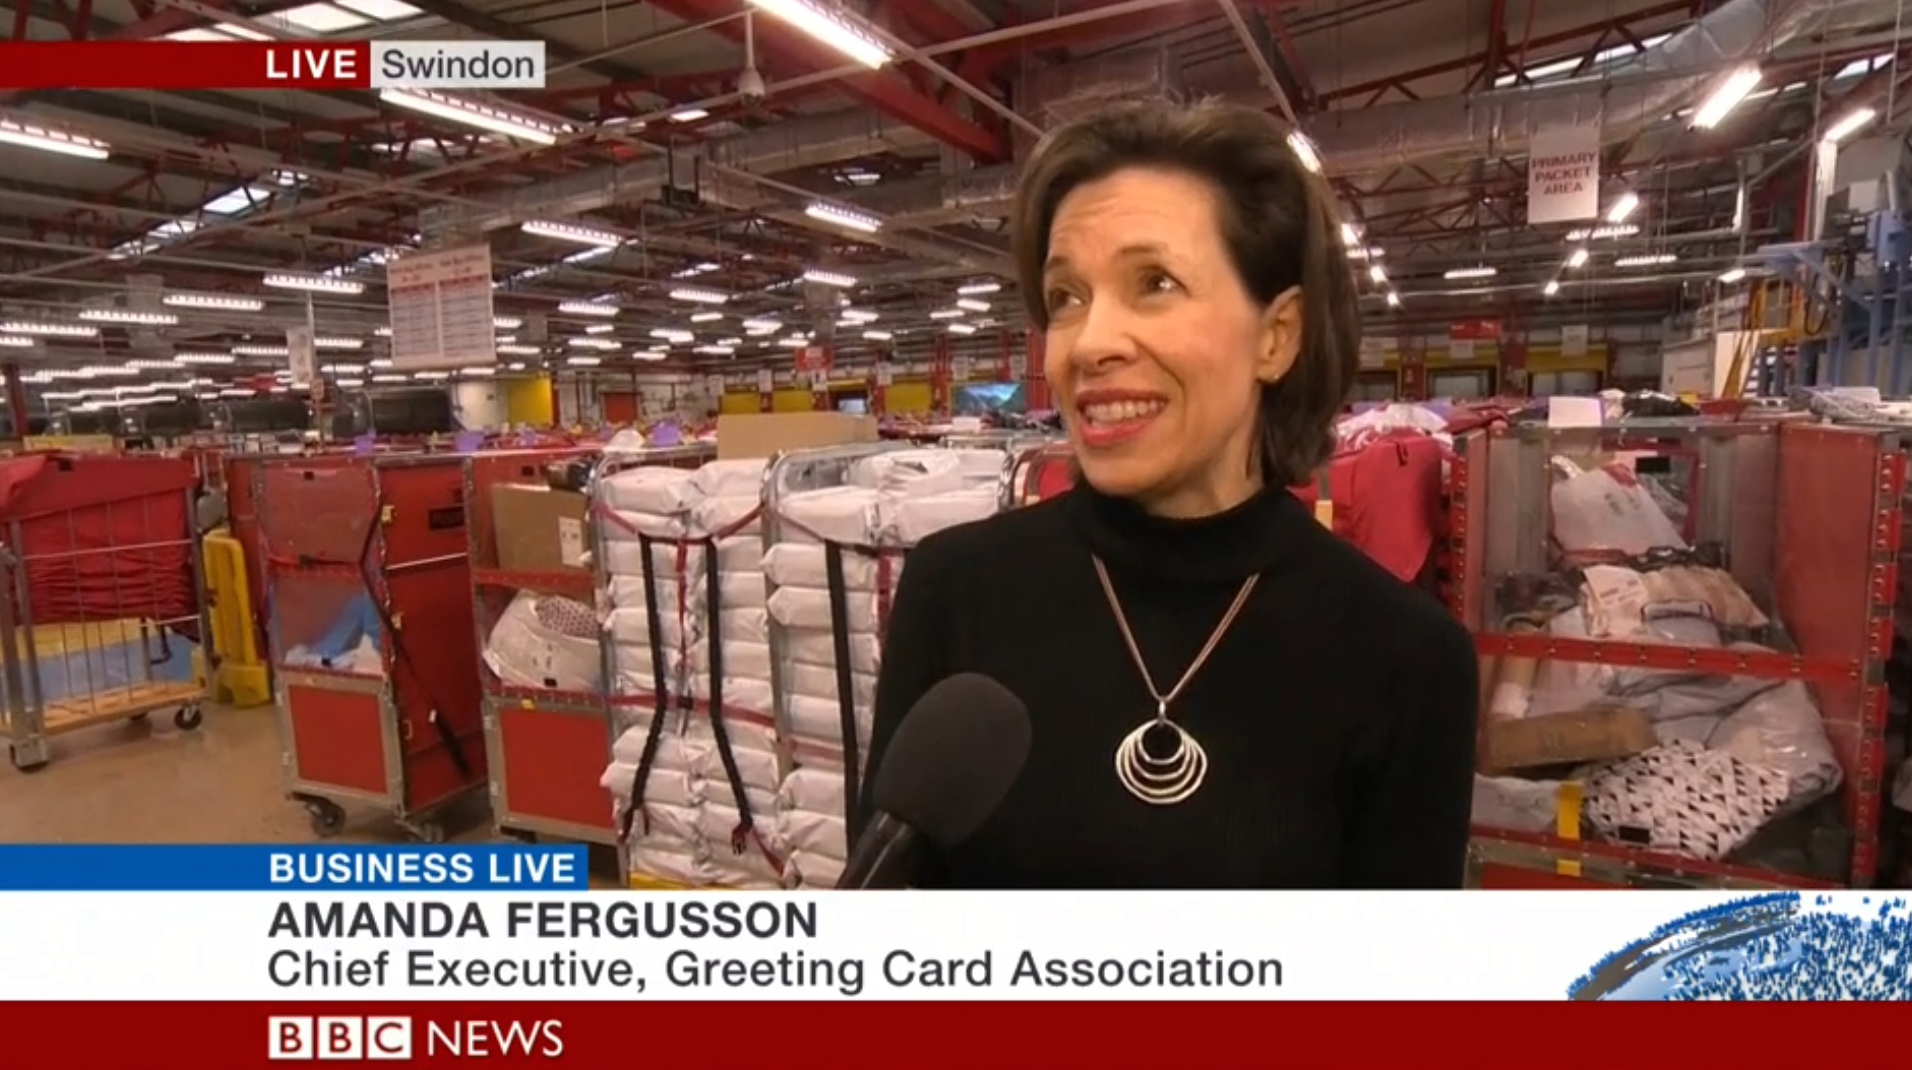 Above: As well as appearing twice on BBC Breakfast, Amanda also appeared on BBC Business Live on the BBC News 24 channel.